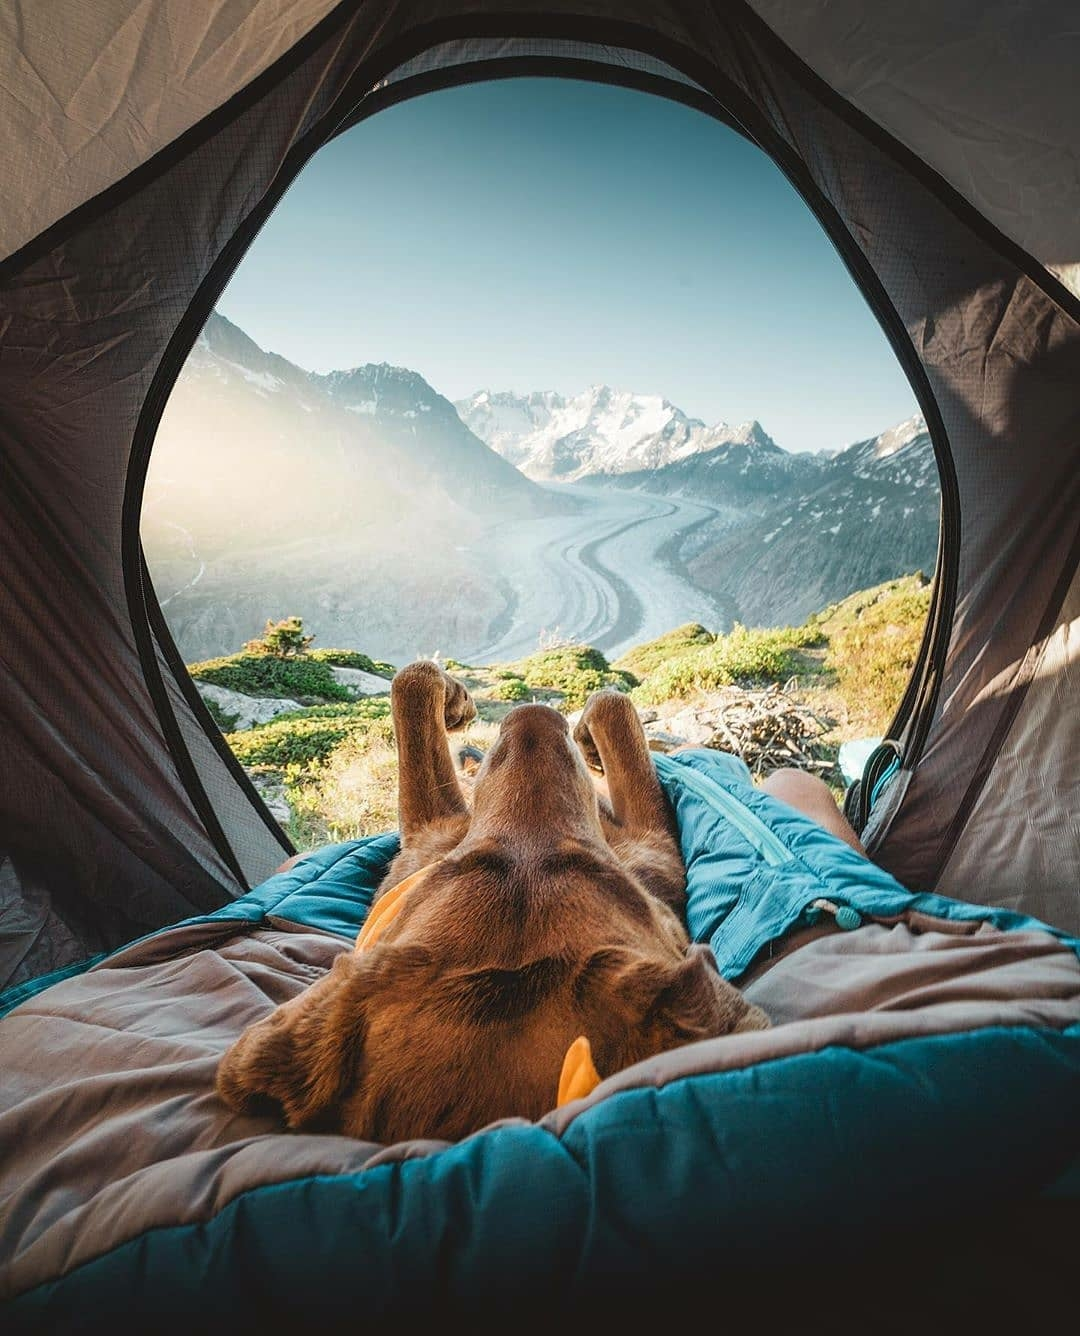 doggo relaxing in tent with view